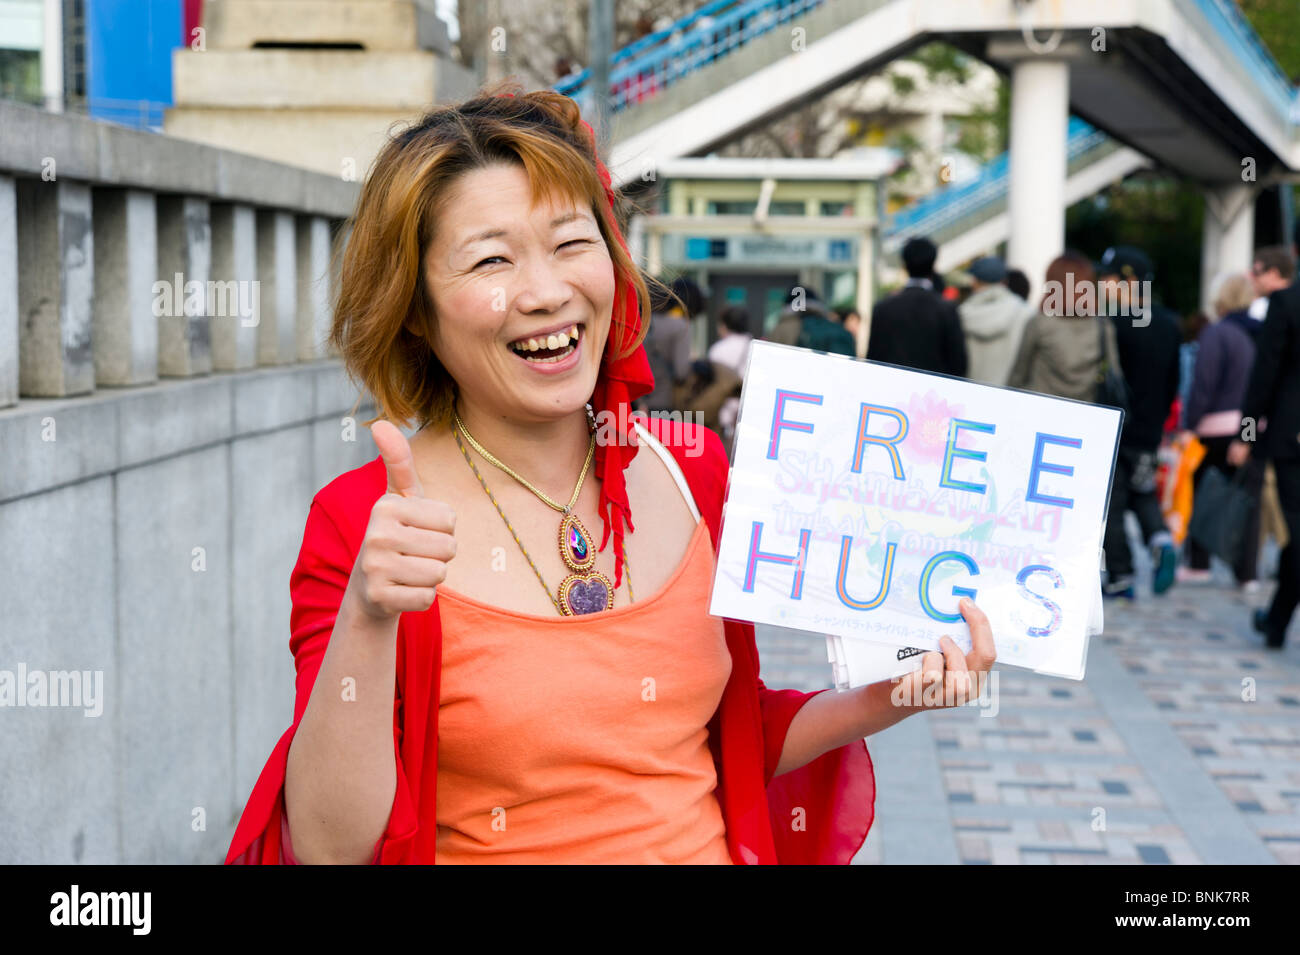 Young woman offering free hugs to raise awareness of youth suicide, Harajuku, Tokyo, Japan - Stock Image